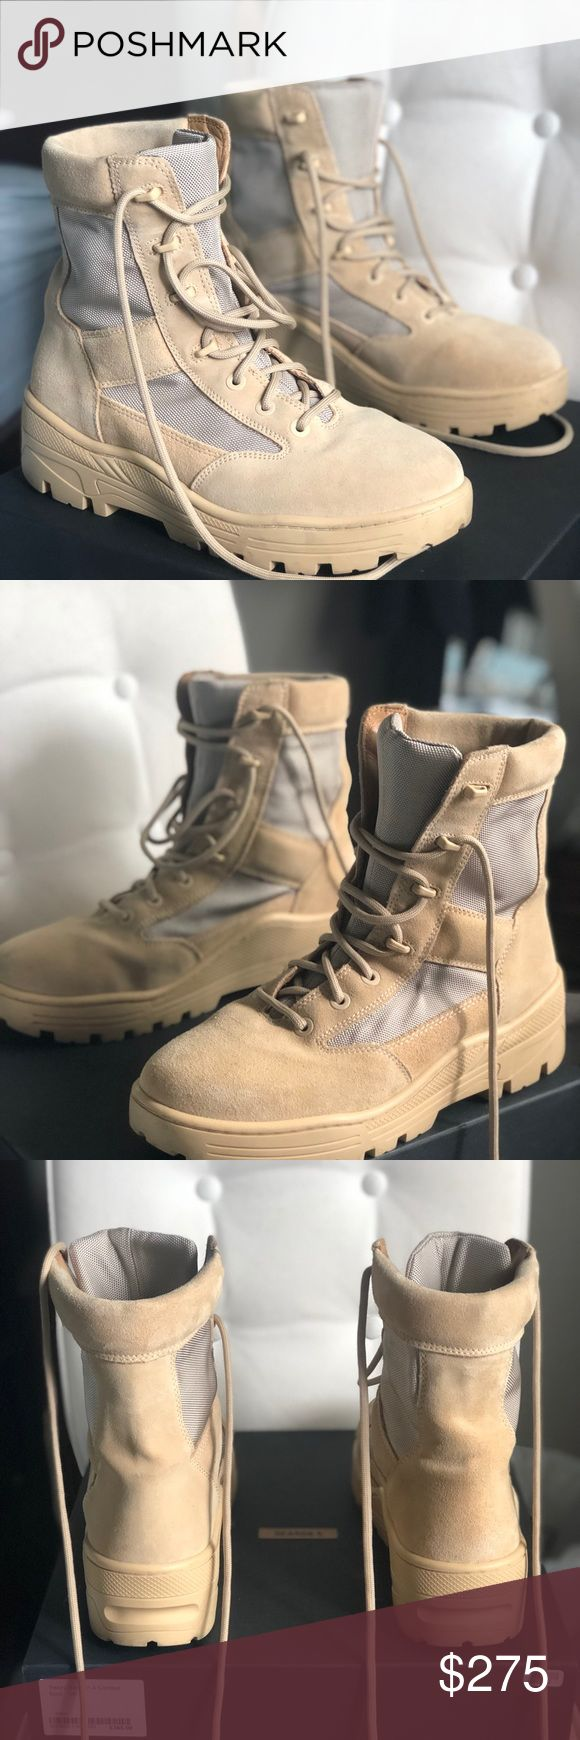 Yeezy Season 4 Combat Boots Selling size 10.5 yeezy season 4 combat boots in sand.  Worn only a handful of times.   9/10 great condition...no marks on the suede, sole is for the most part entirely clear with some general wear on the bottom.  Comes with original box. Price is to sell that's why Yeezy Shoes Boots